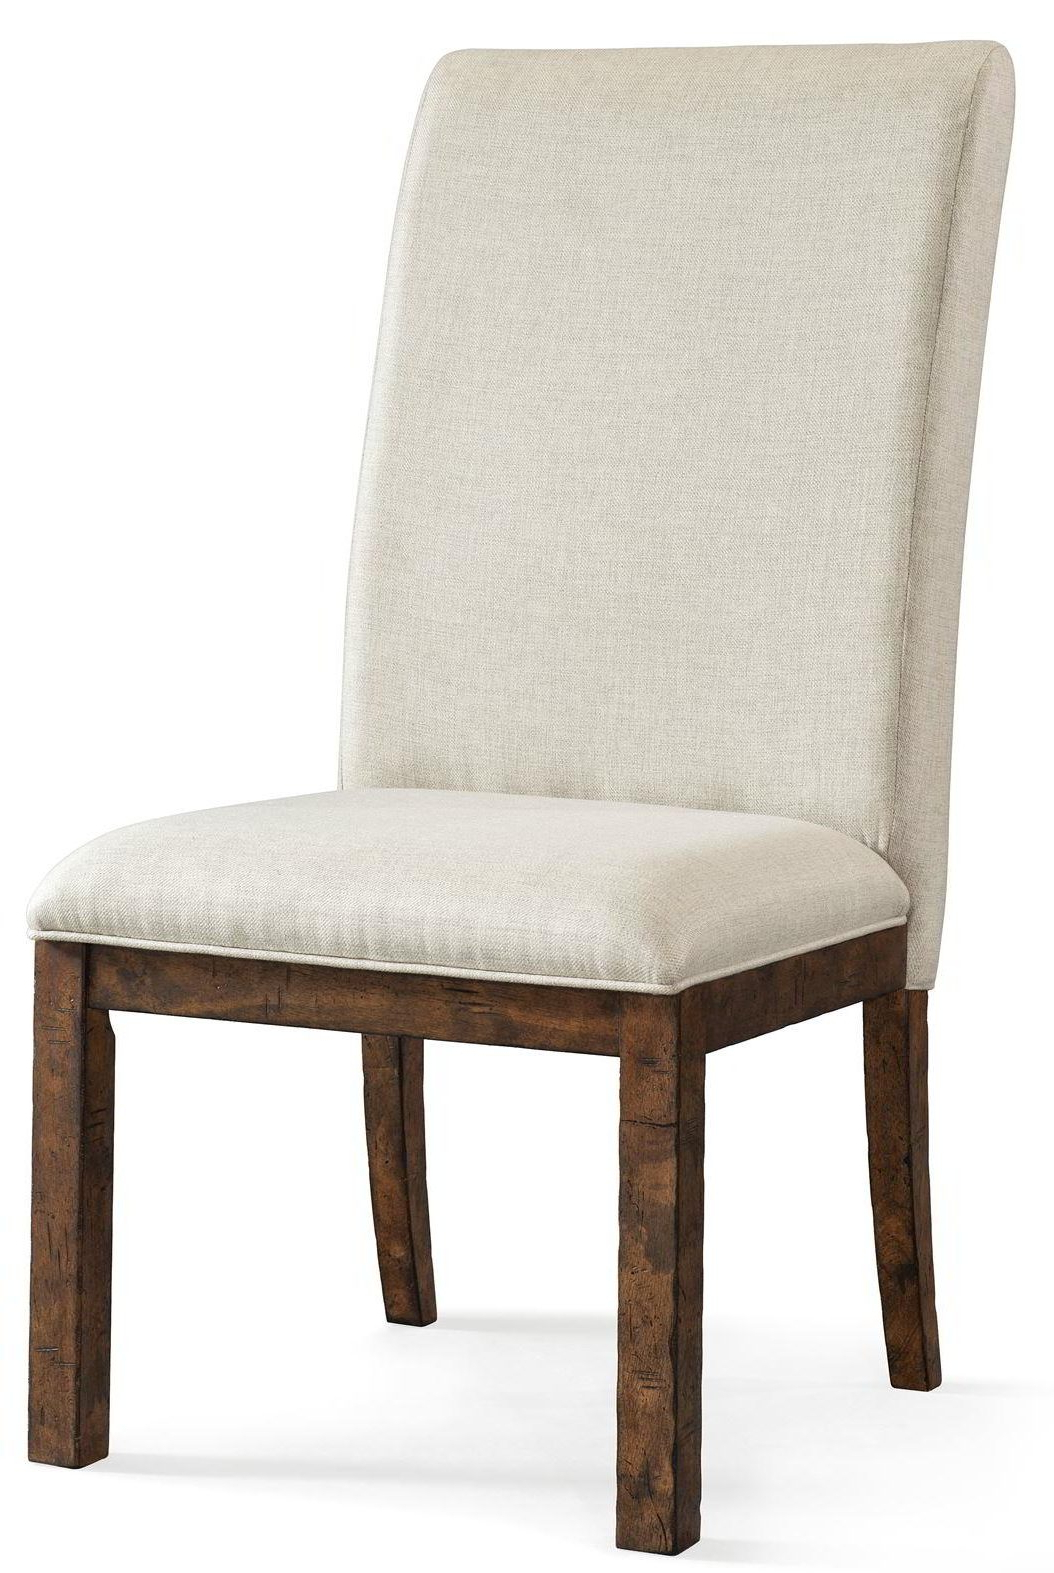 Gwen Upholstered Side Chair, Simple Elegance – Frontroom Furnishings For Widely Used Gwen Sofa Chairs (Gallery 10 of 20)